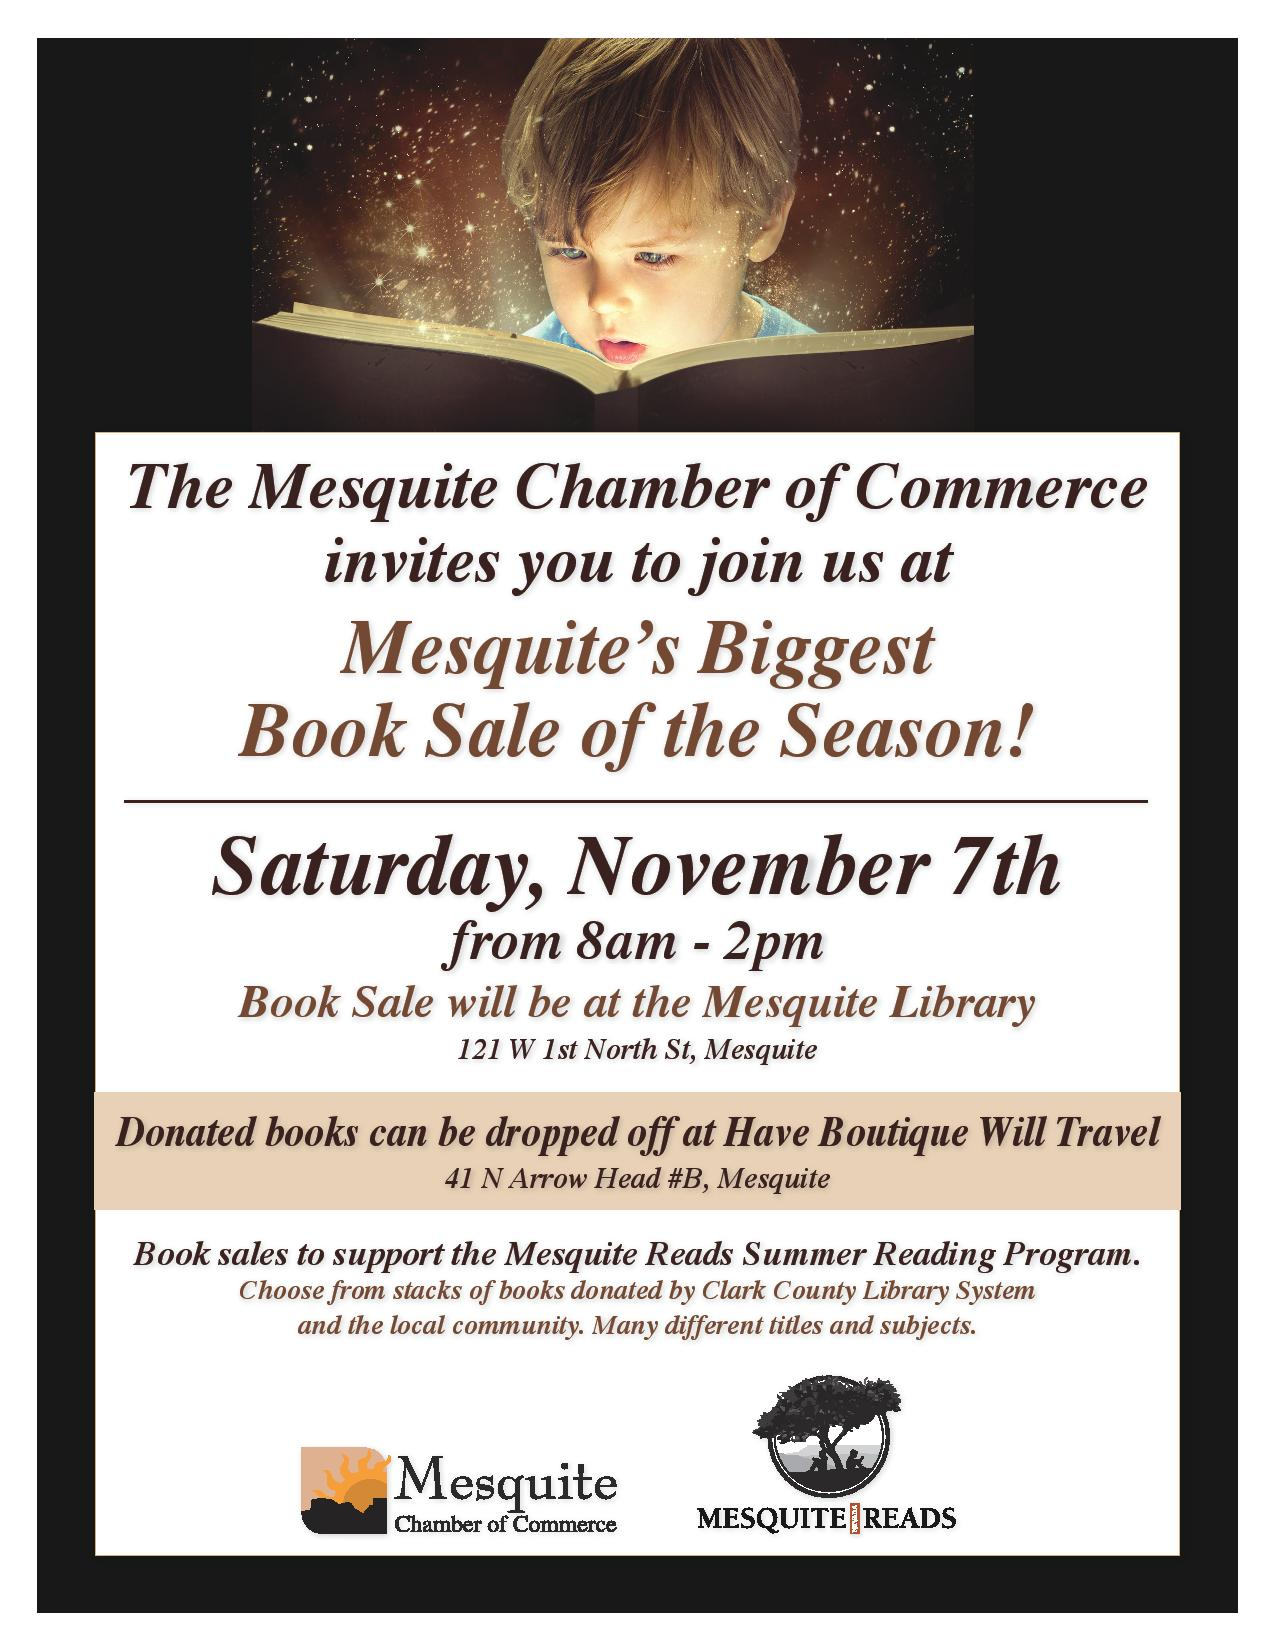 Mesquite Chamber of Commerce Book Sale Set